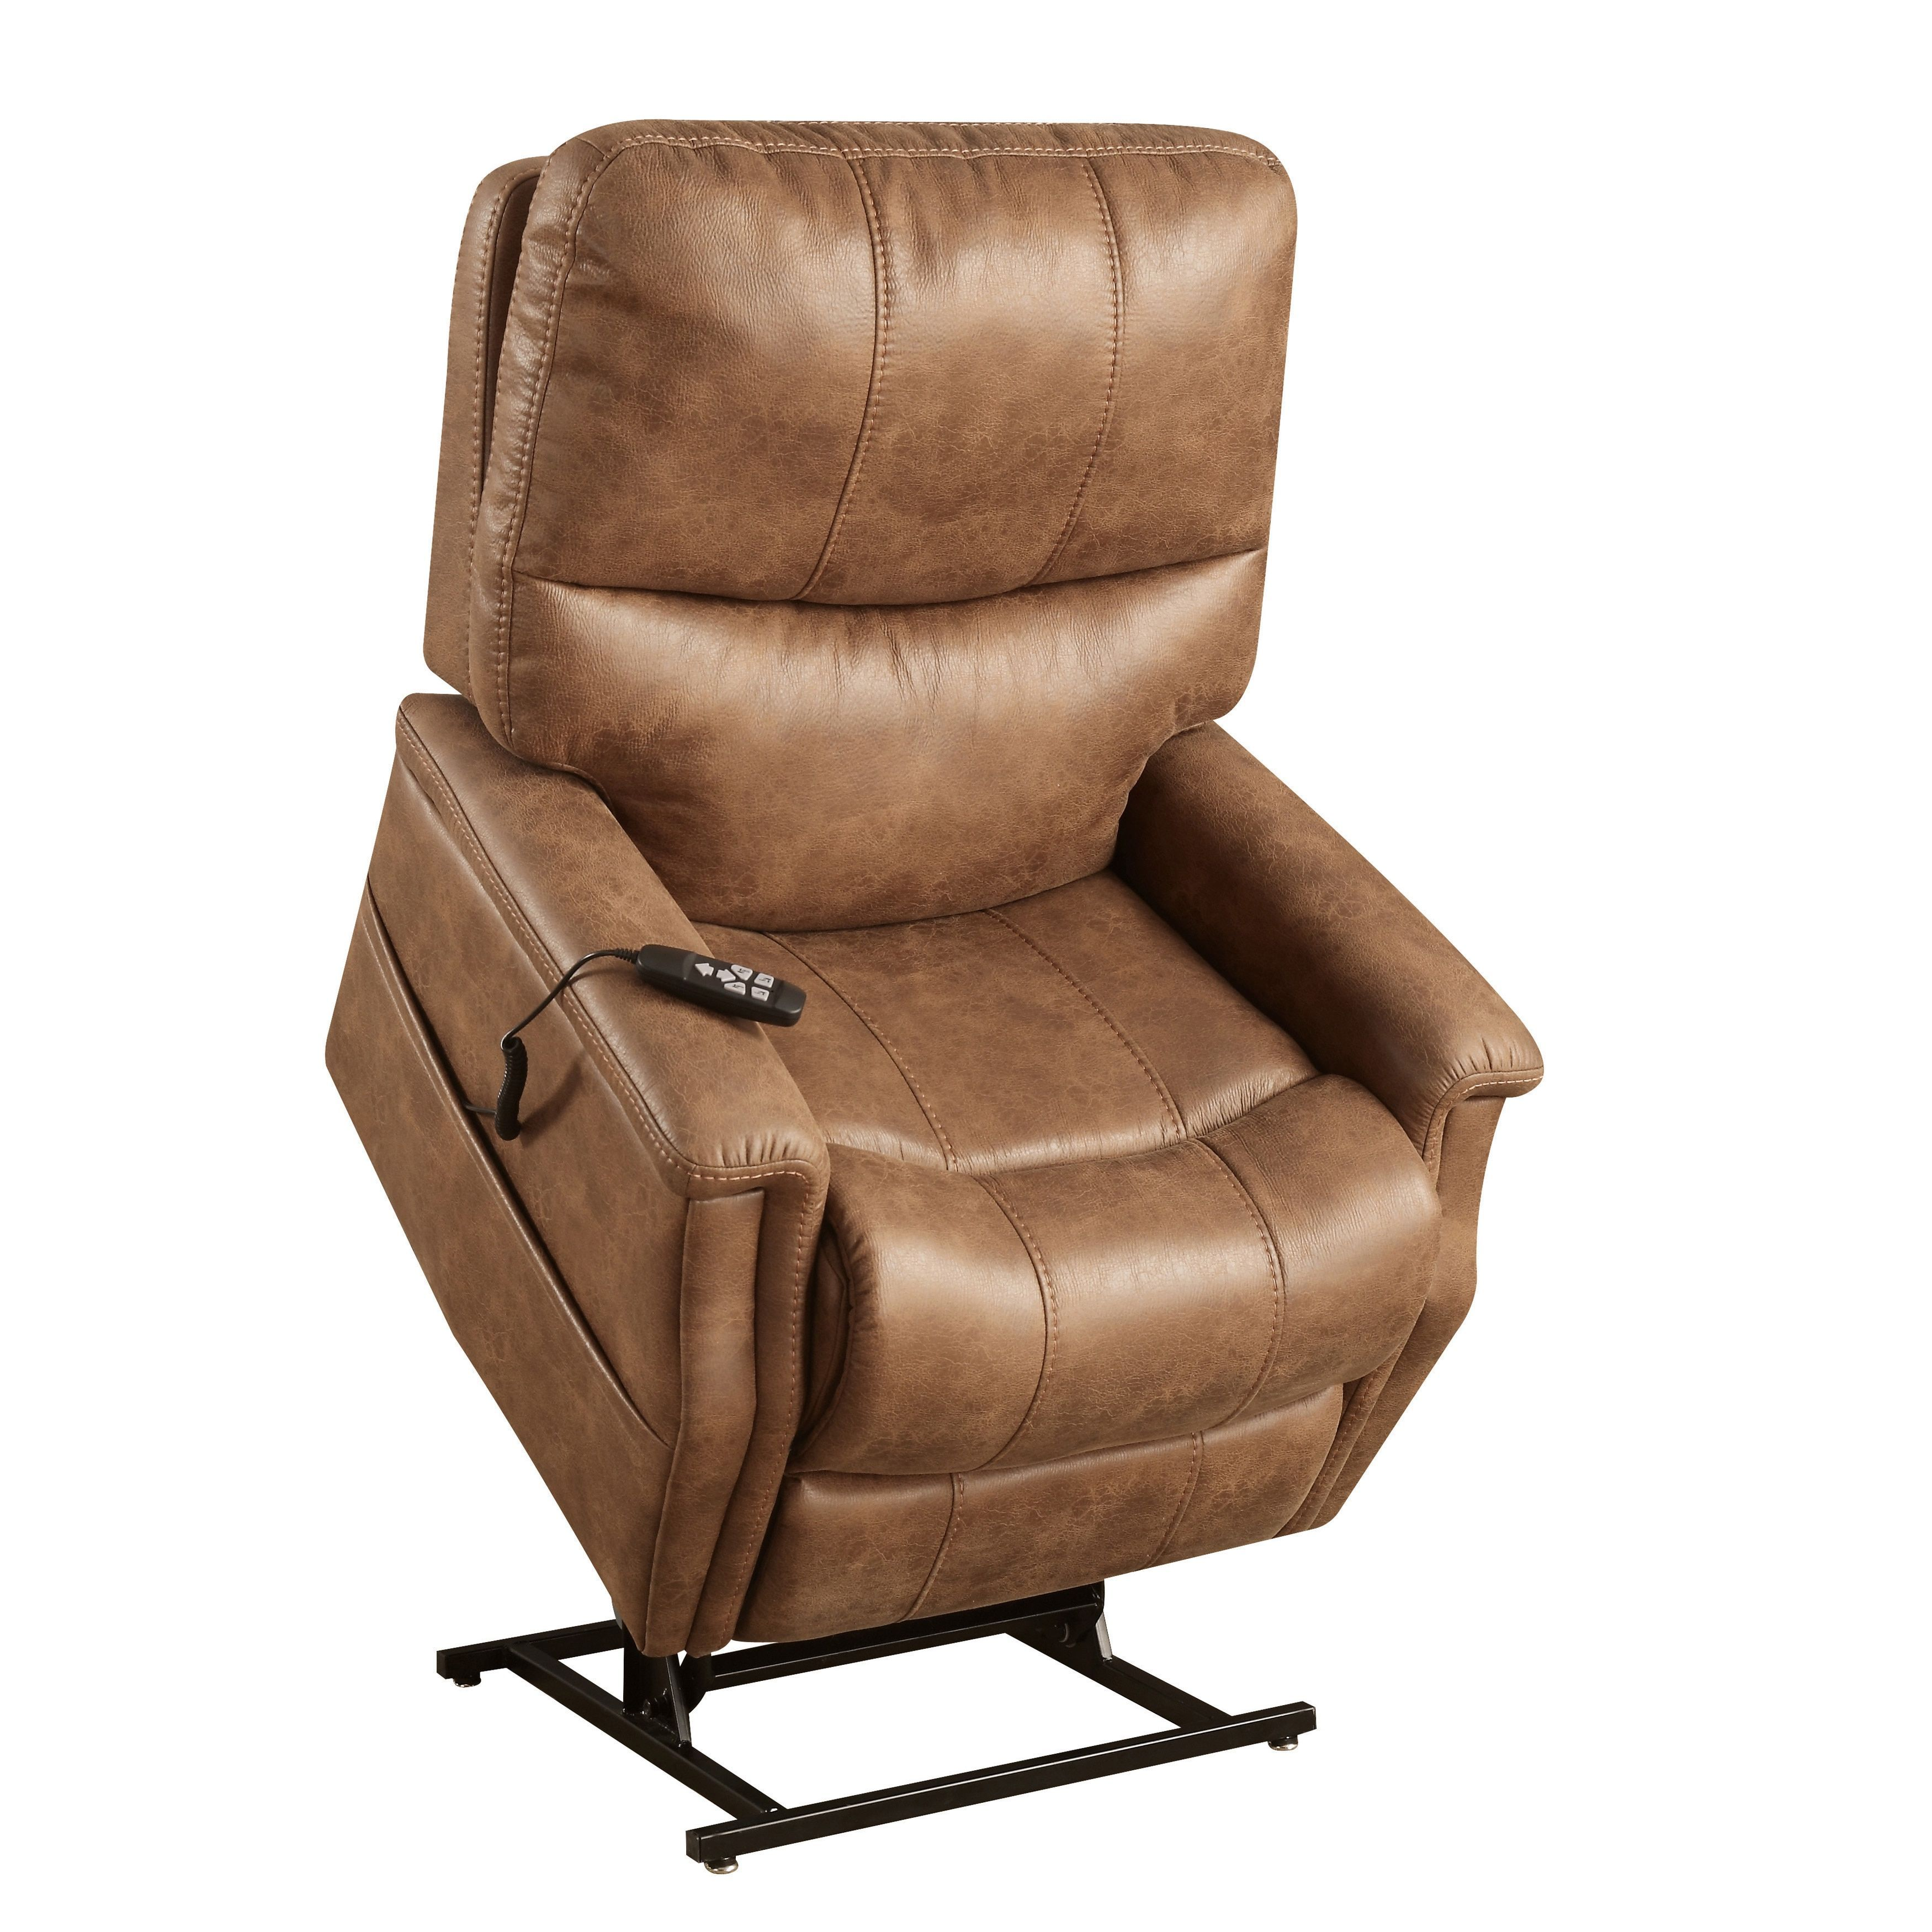 Distressed faux leather chair - Distressed Faux Leather Power Dual Motor Lift Chair Recliner